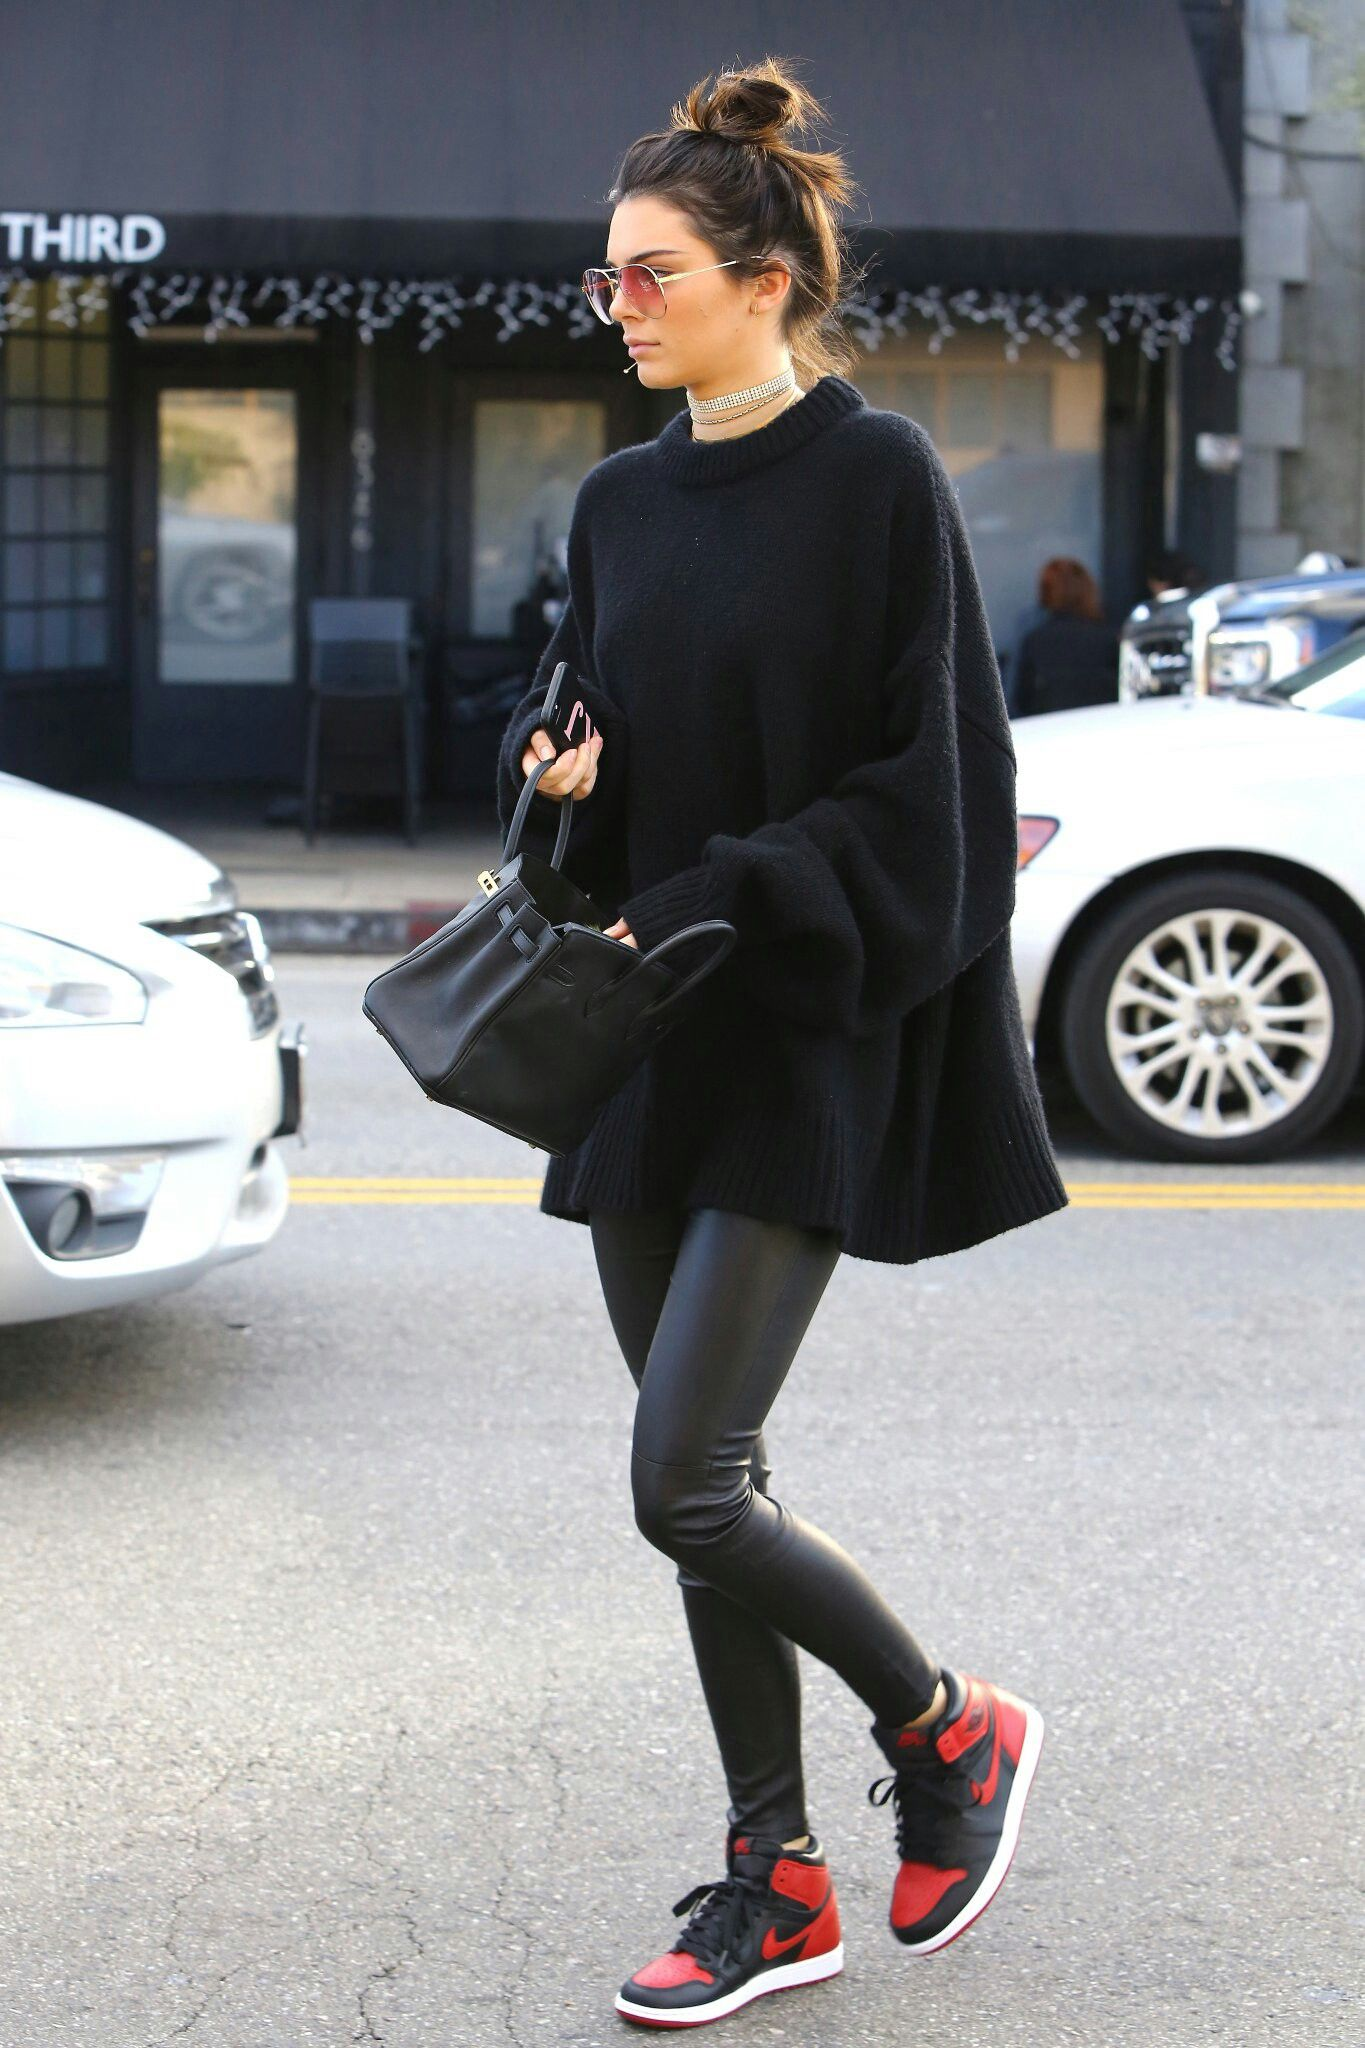 f280f4e6b819 30 cool winter outfits with sneakers you can copy 21 - 30 cool winter  outfits with sneakers you can copy. Kendal Jenner ...